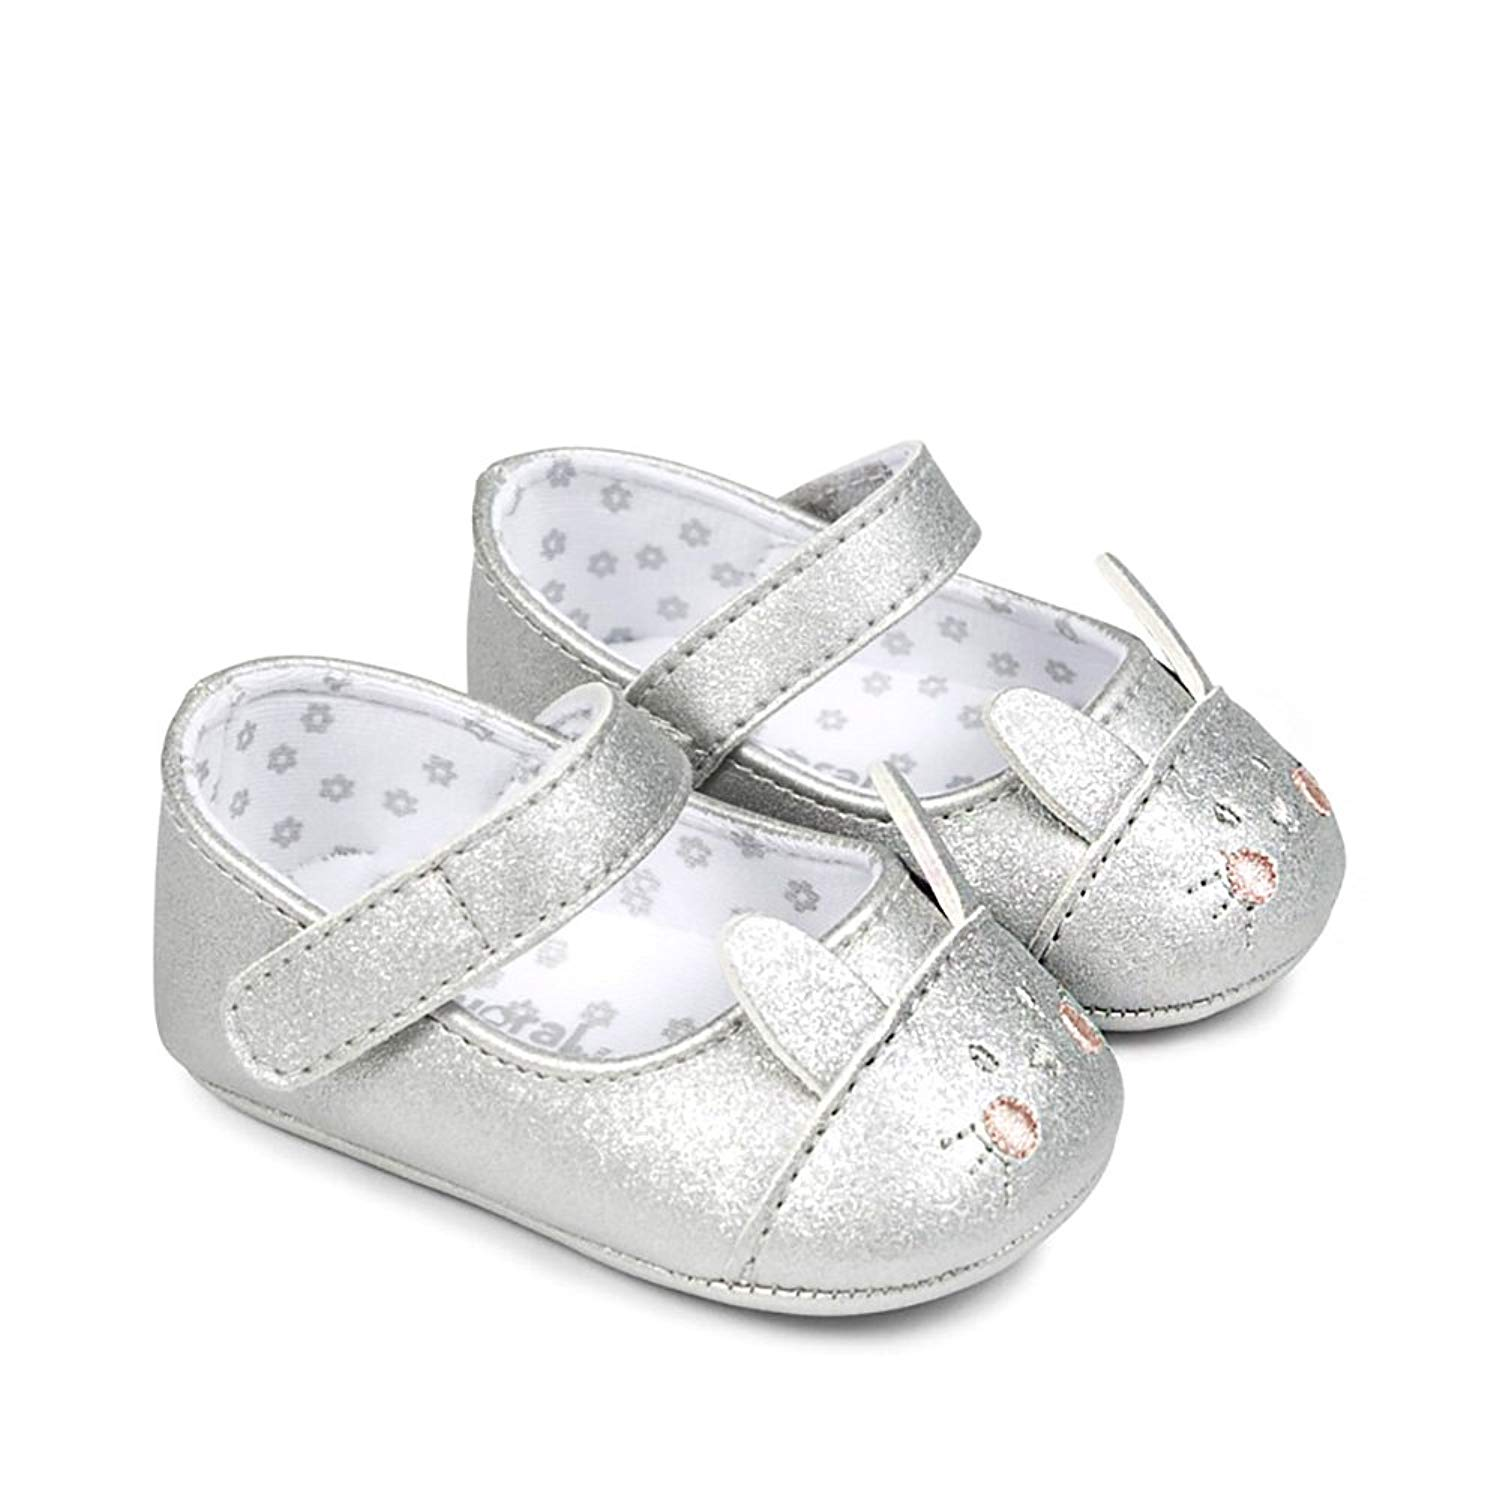 d1734edf5cf1 Get Quotations · Mayoral Bunny Mary Jane Shoes for Baby Girl in Silver